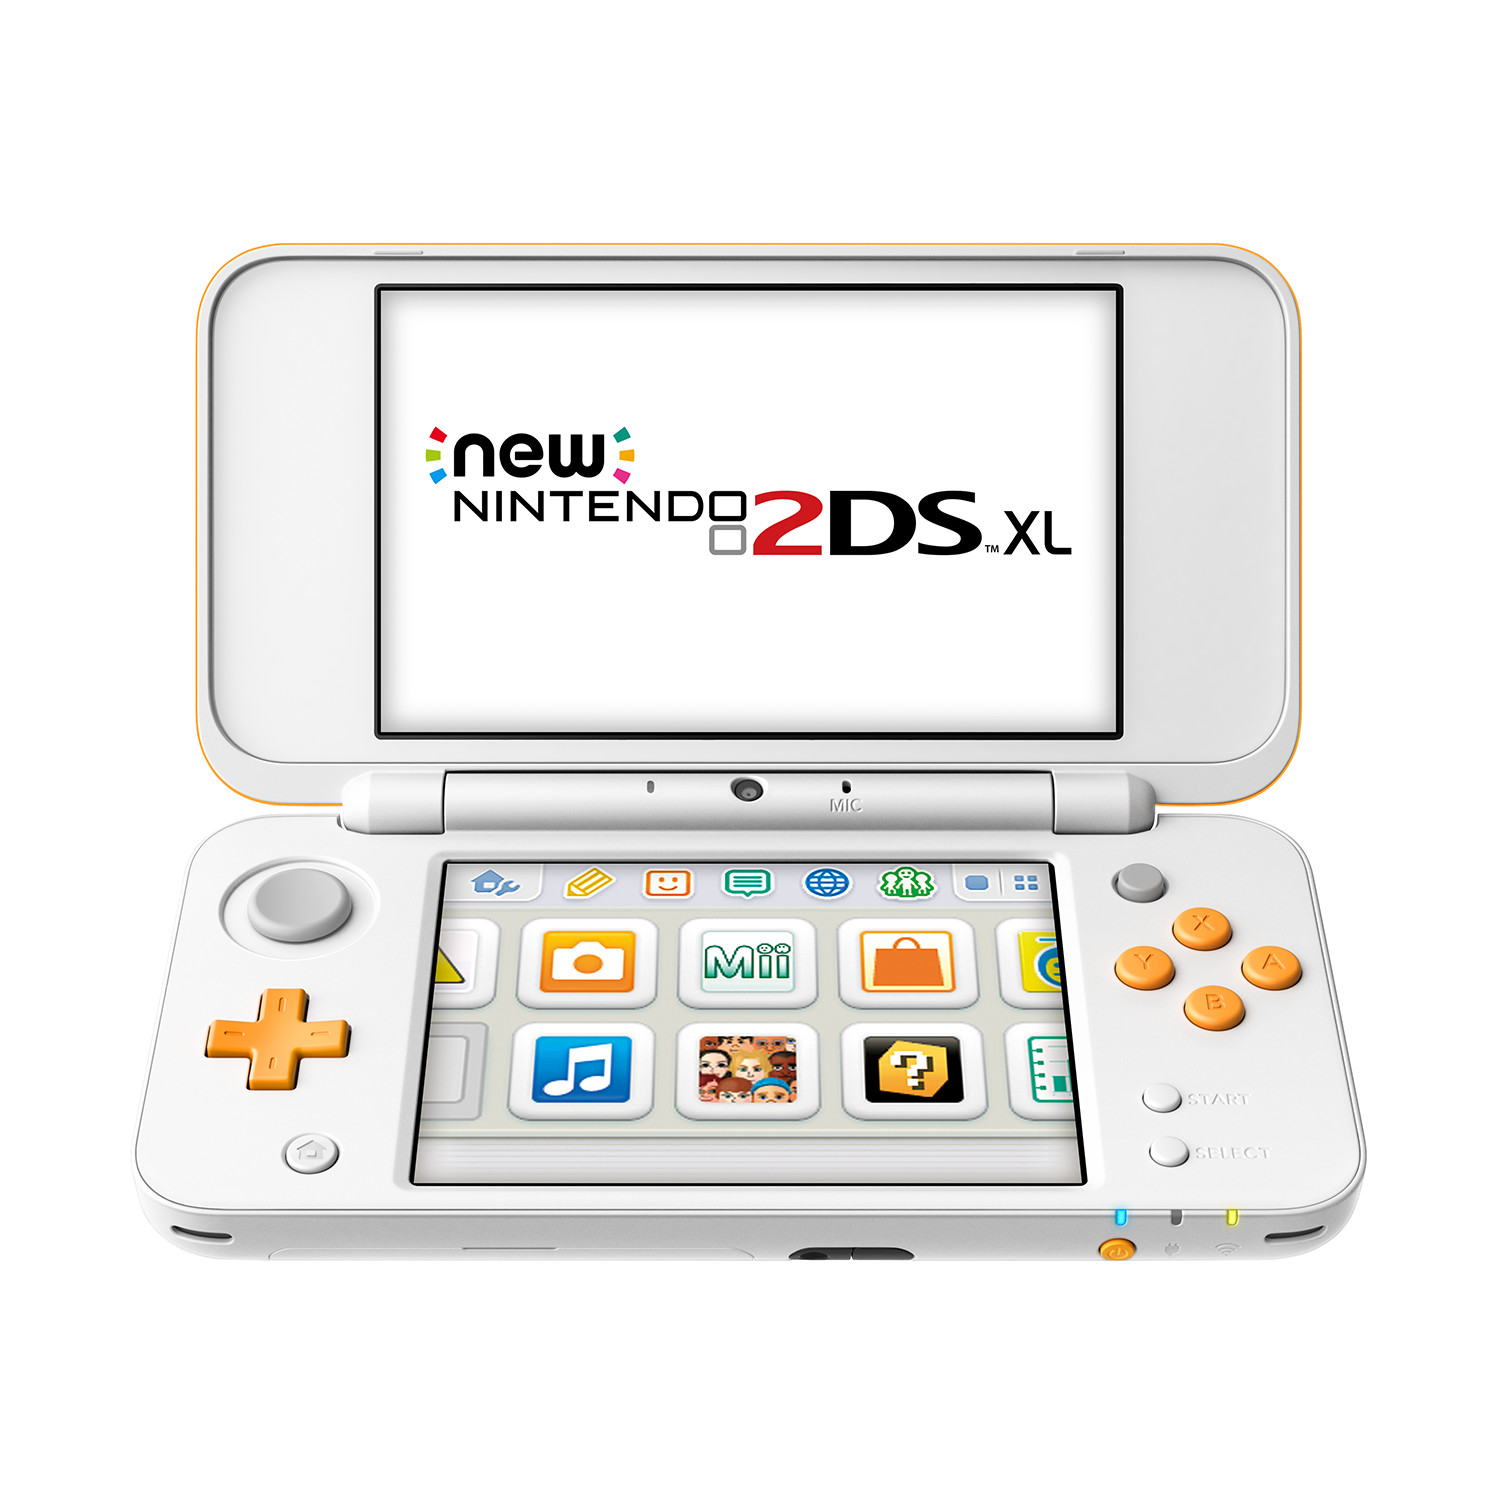 nintendo to launch new nintendo 2ds xl portable system on july 28th news nintendo. Black Bedroom Furniture Sets. Home Design Ideas